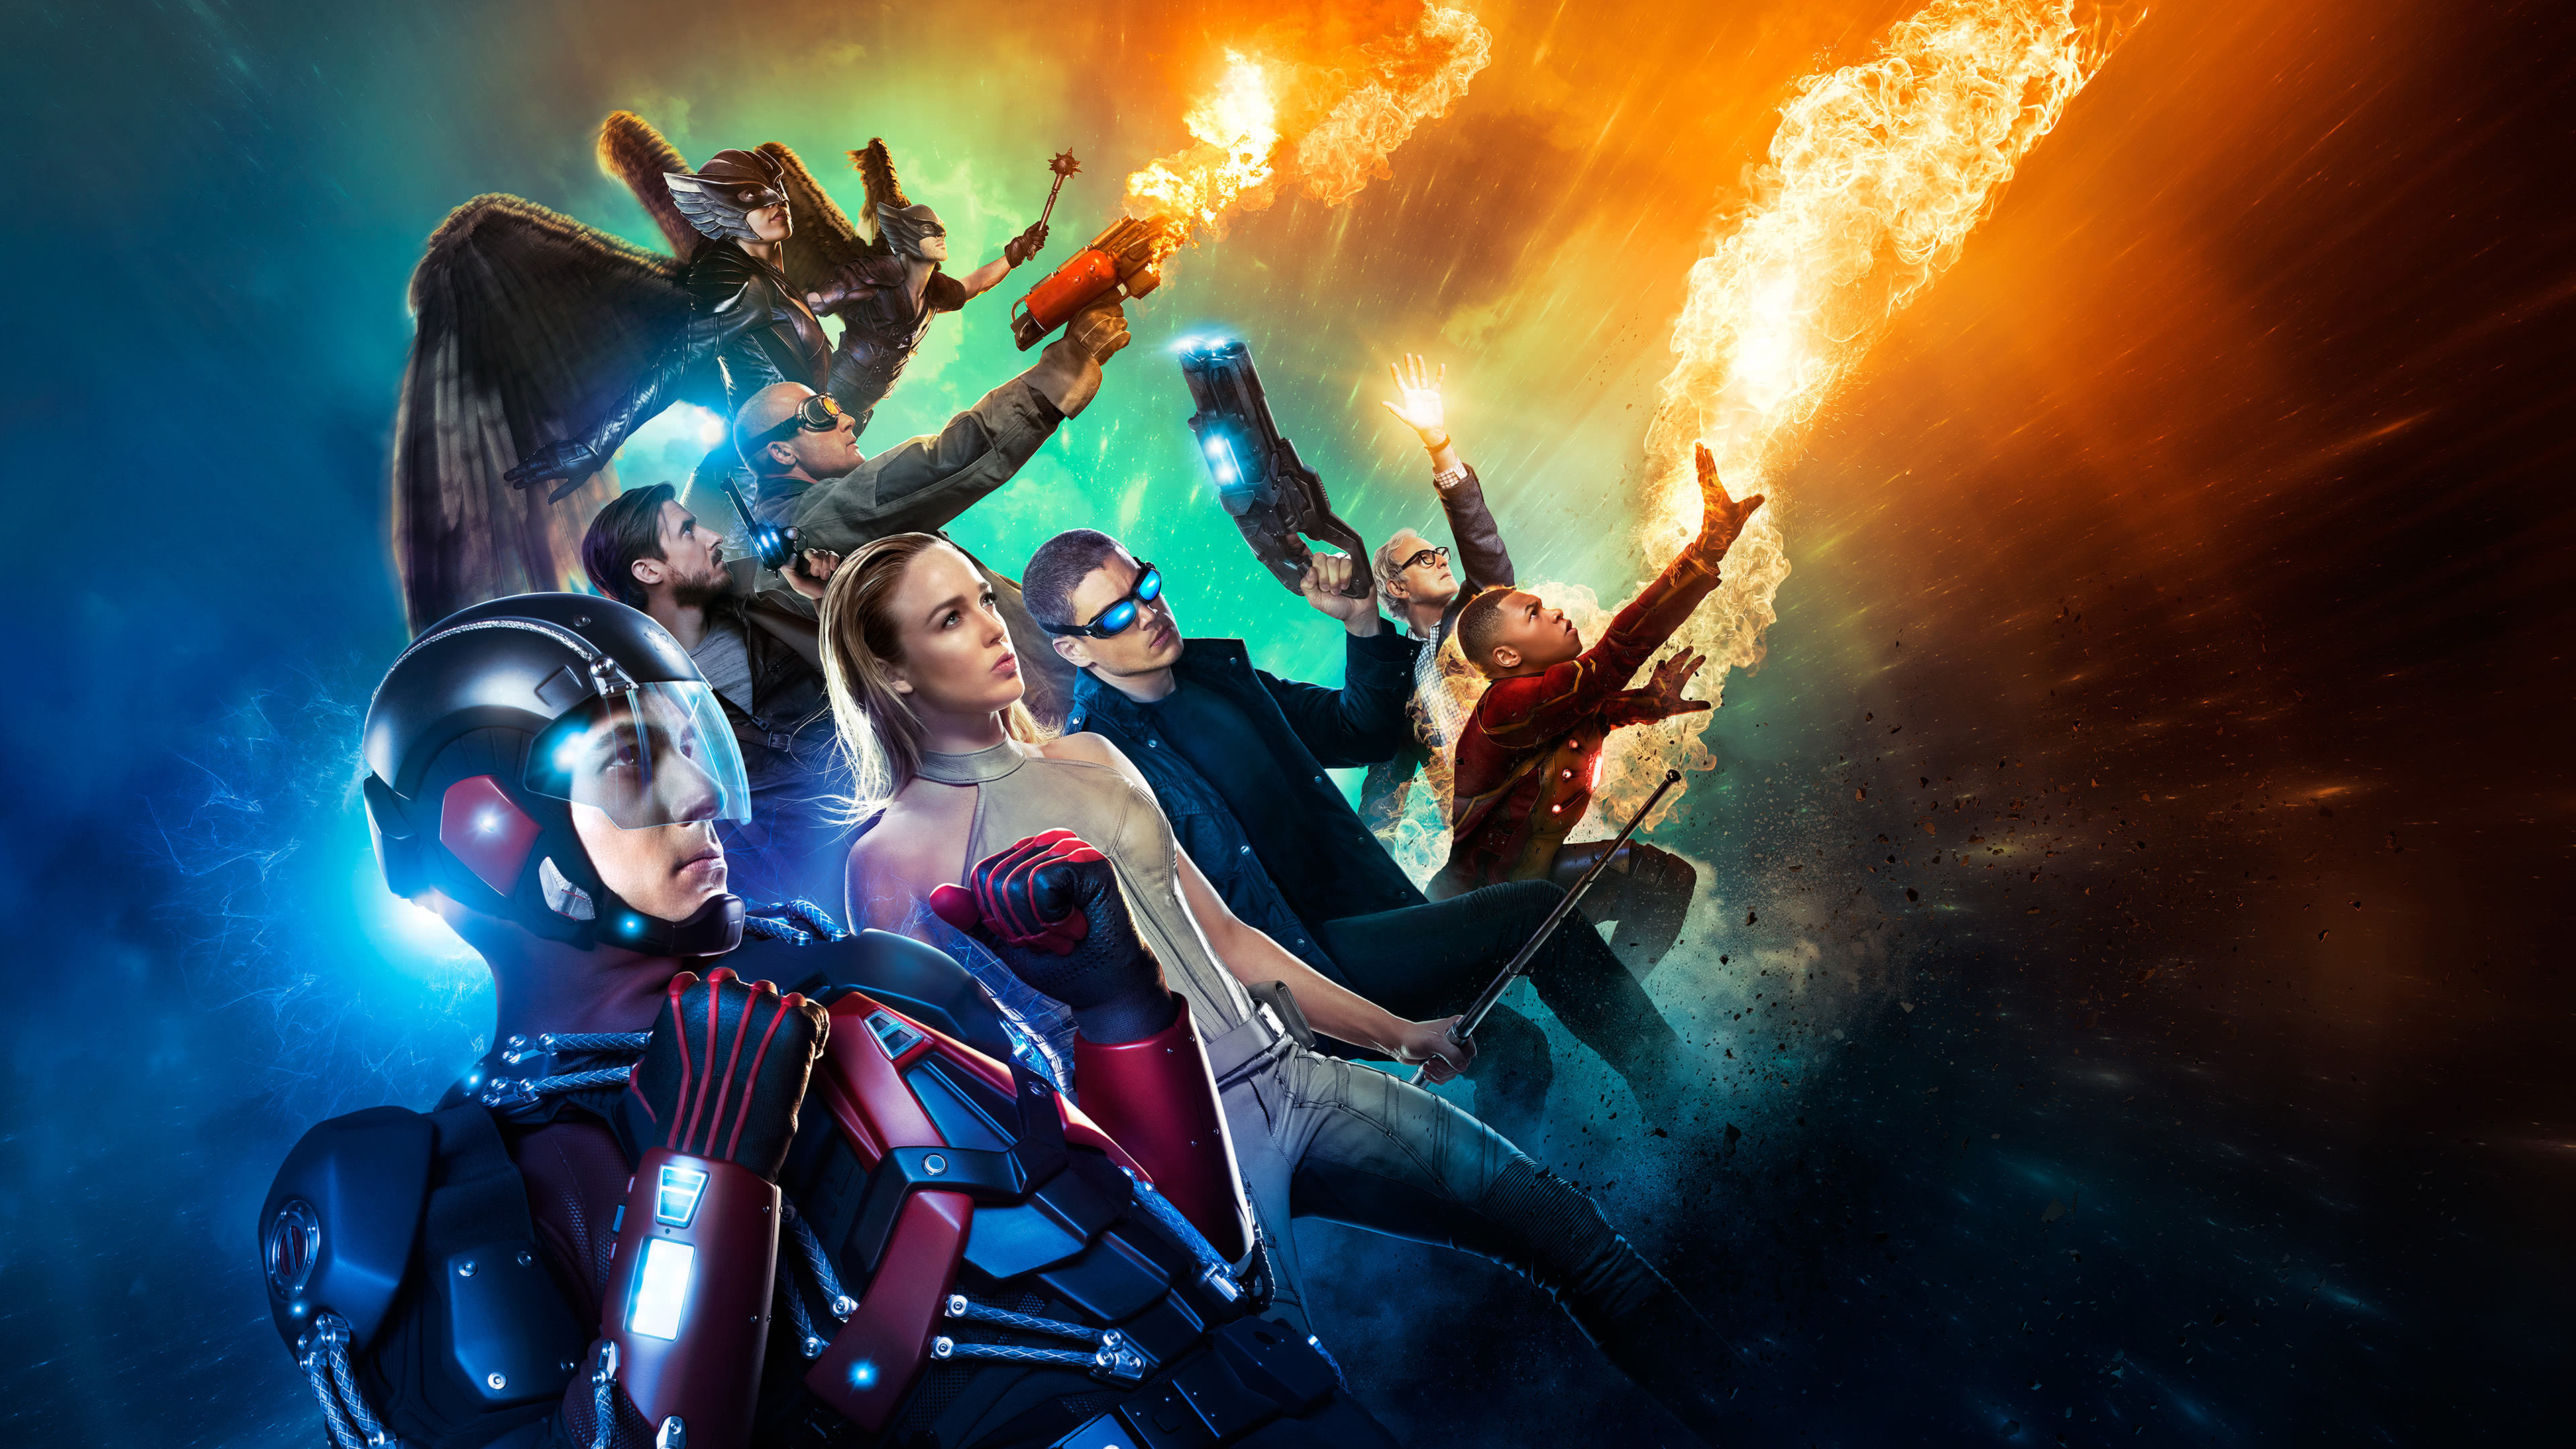 legends of tomorrow superheroes uhd 4k wallpaper